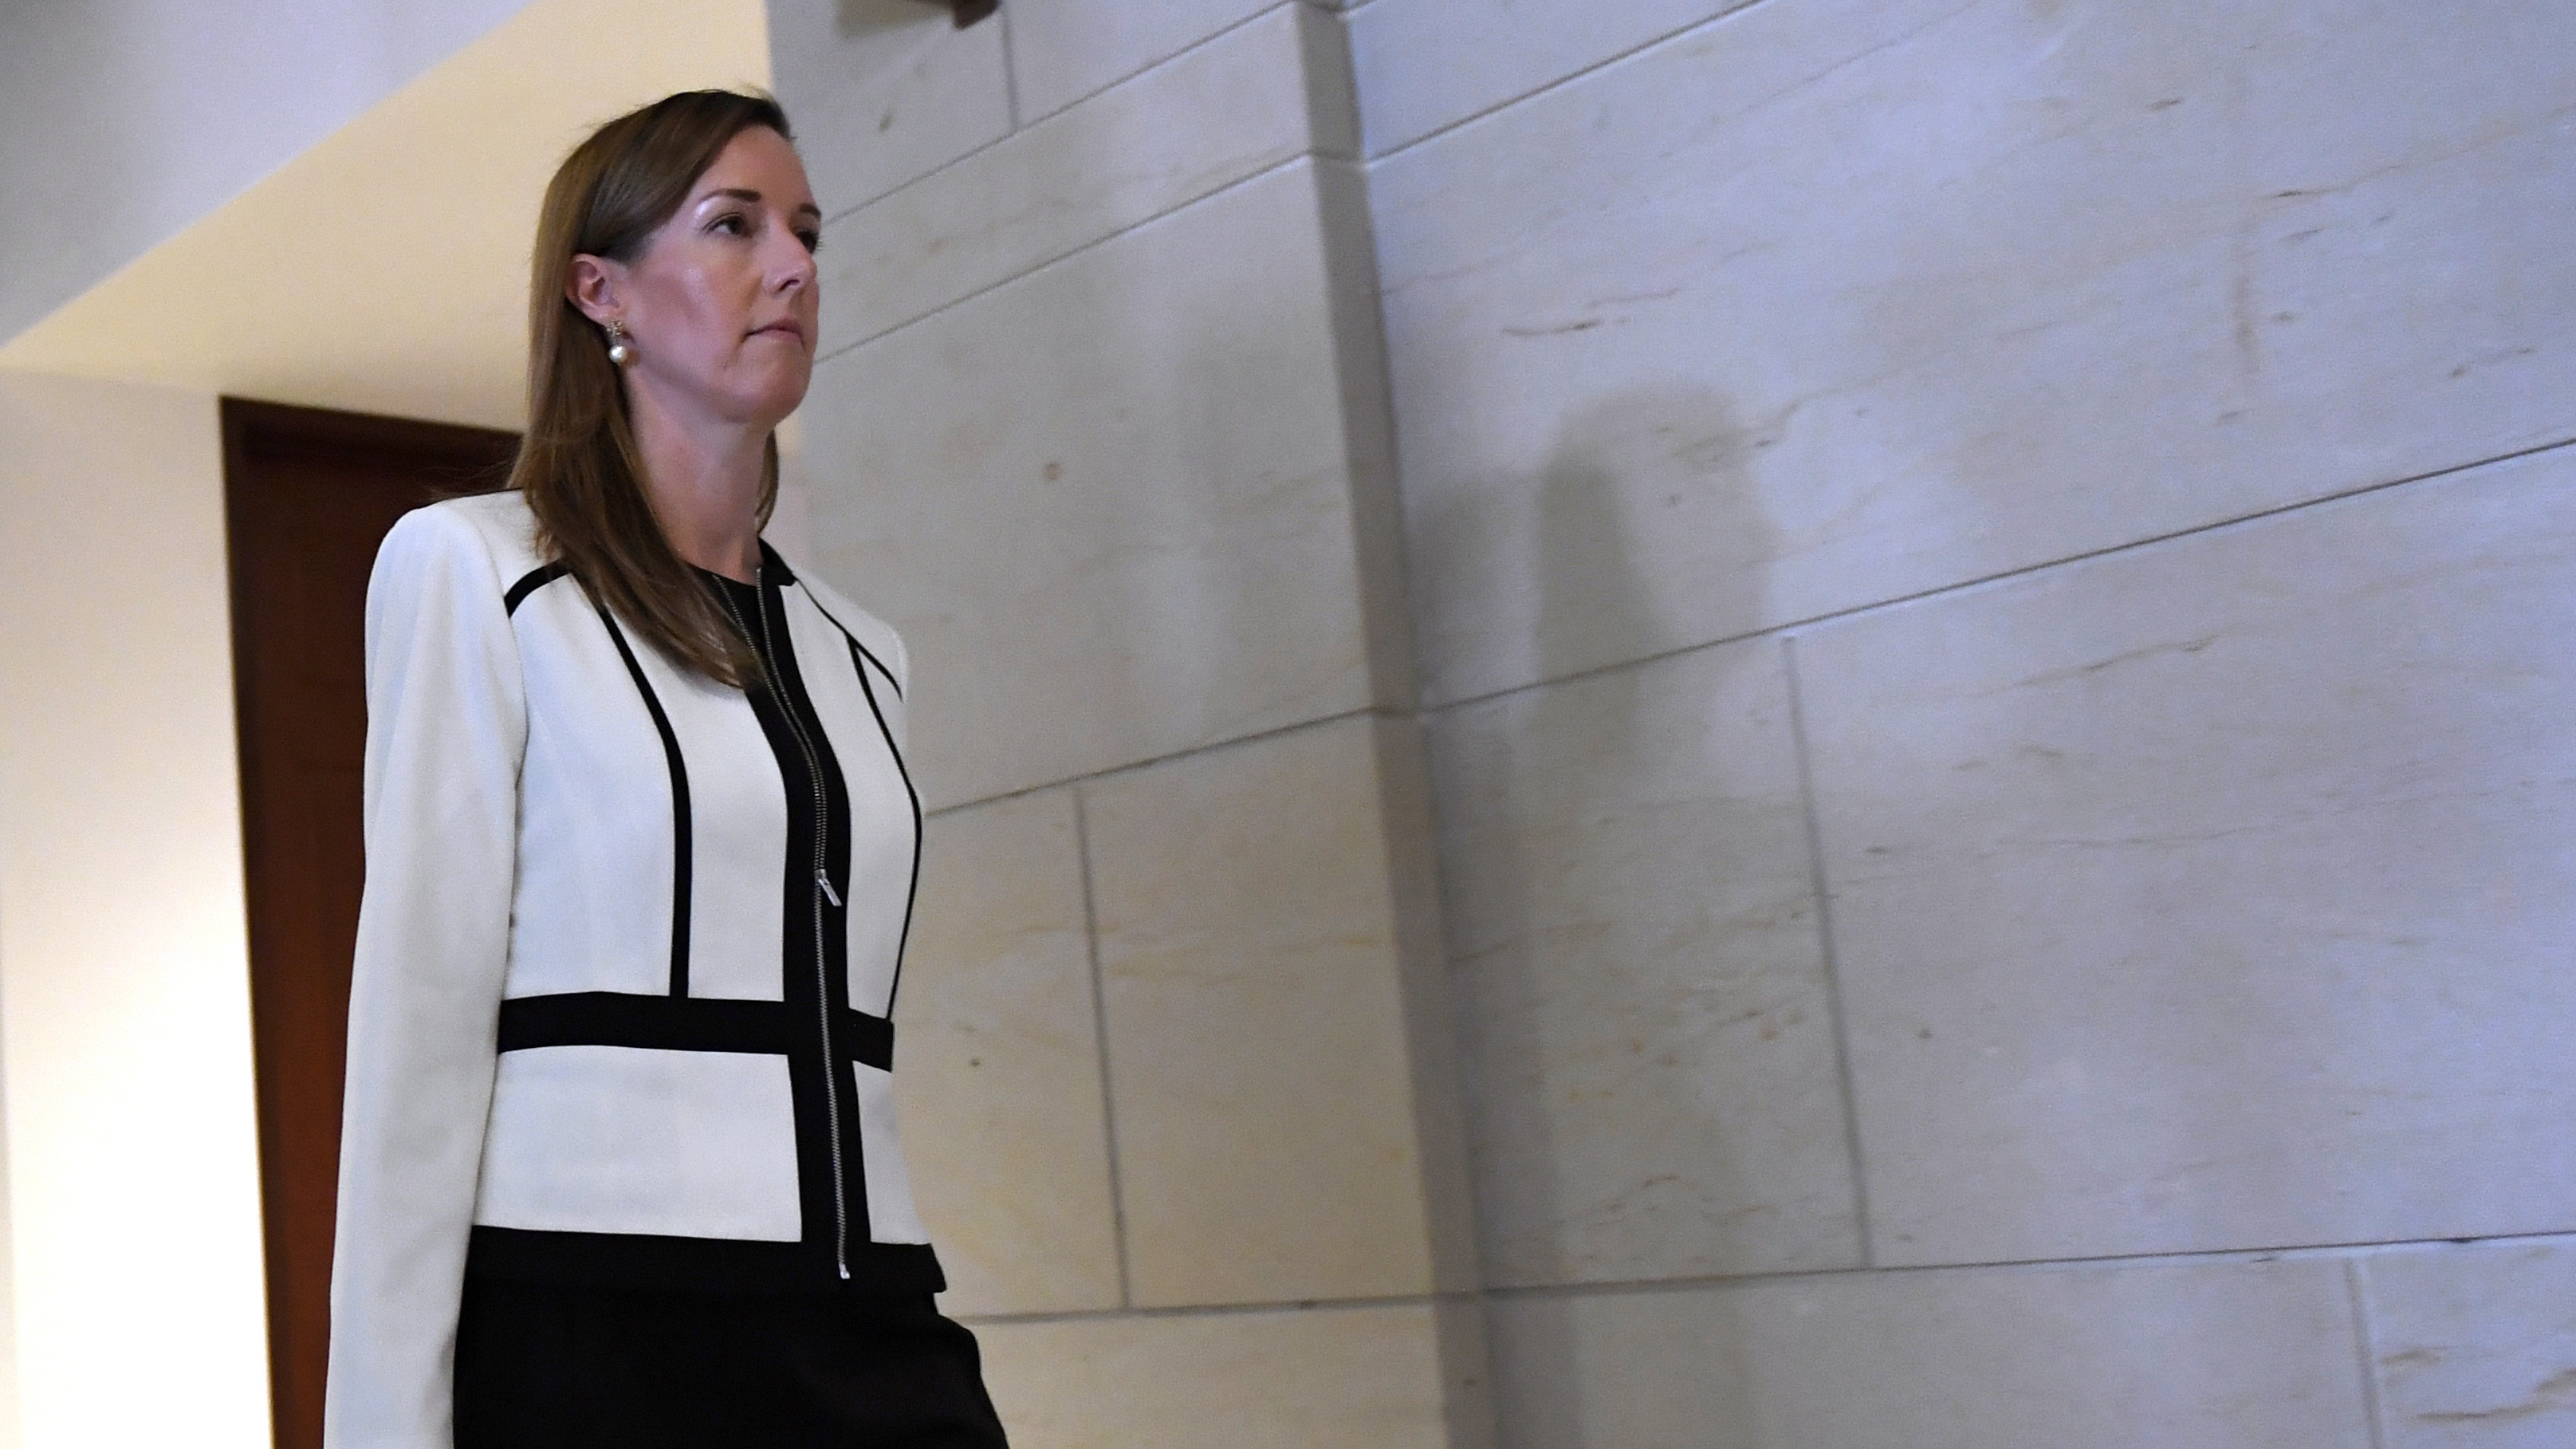 READ: Testimony Of Jennifer Williams, Aide To Vice President Pence